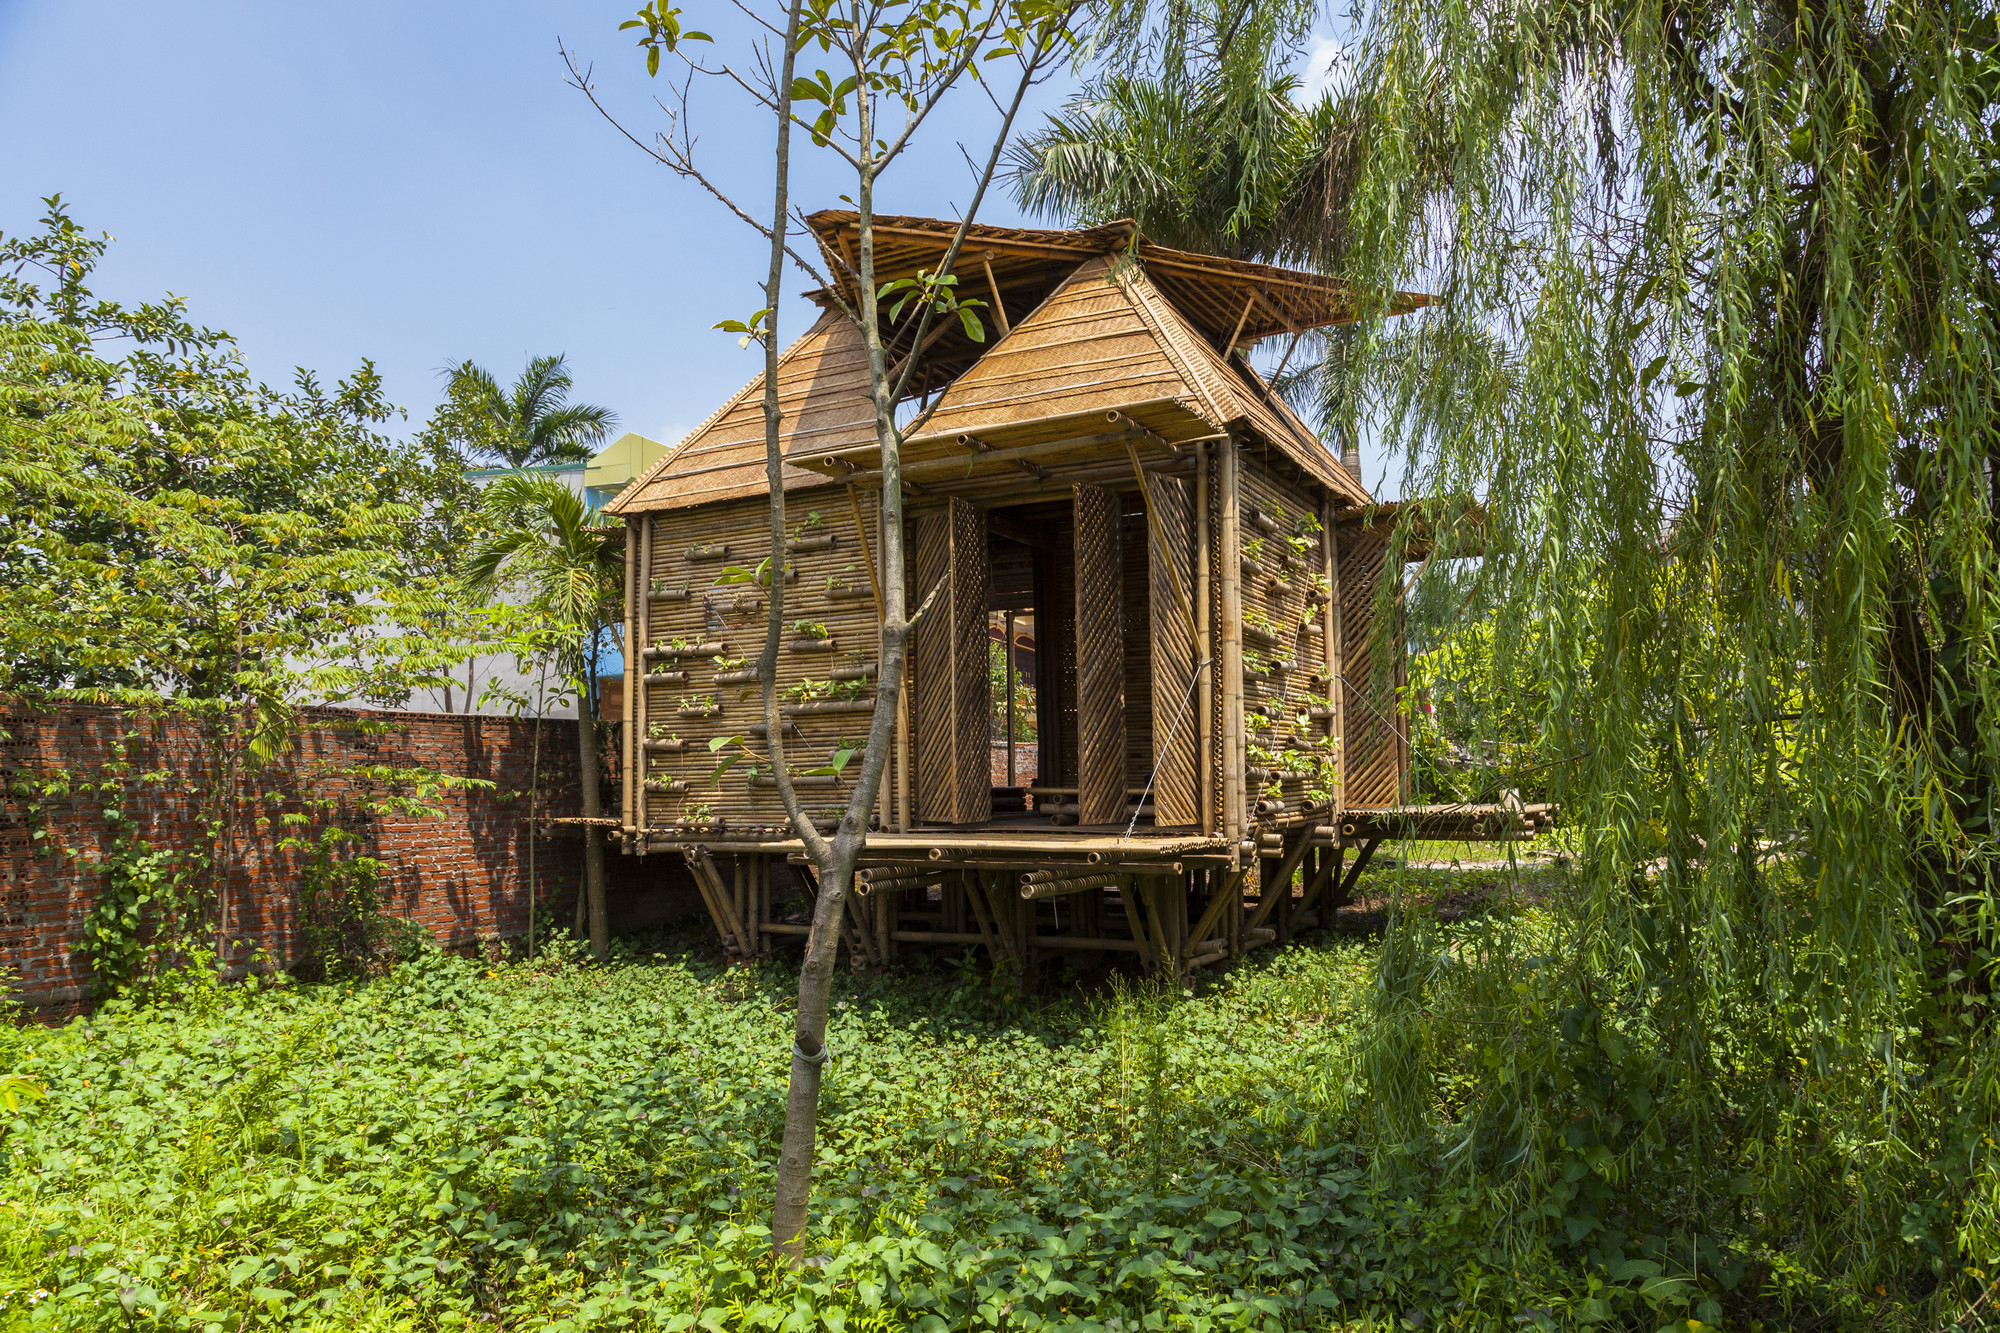 Bb Home / H&P Architects, © Doan Thanh Ha